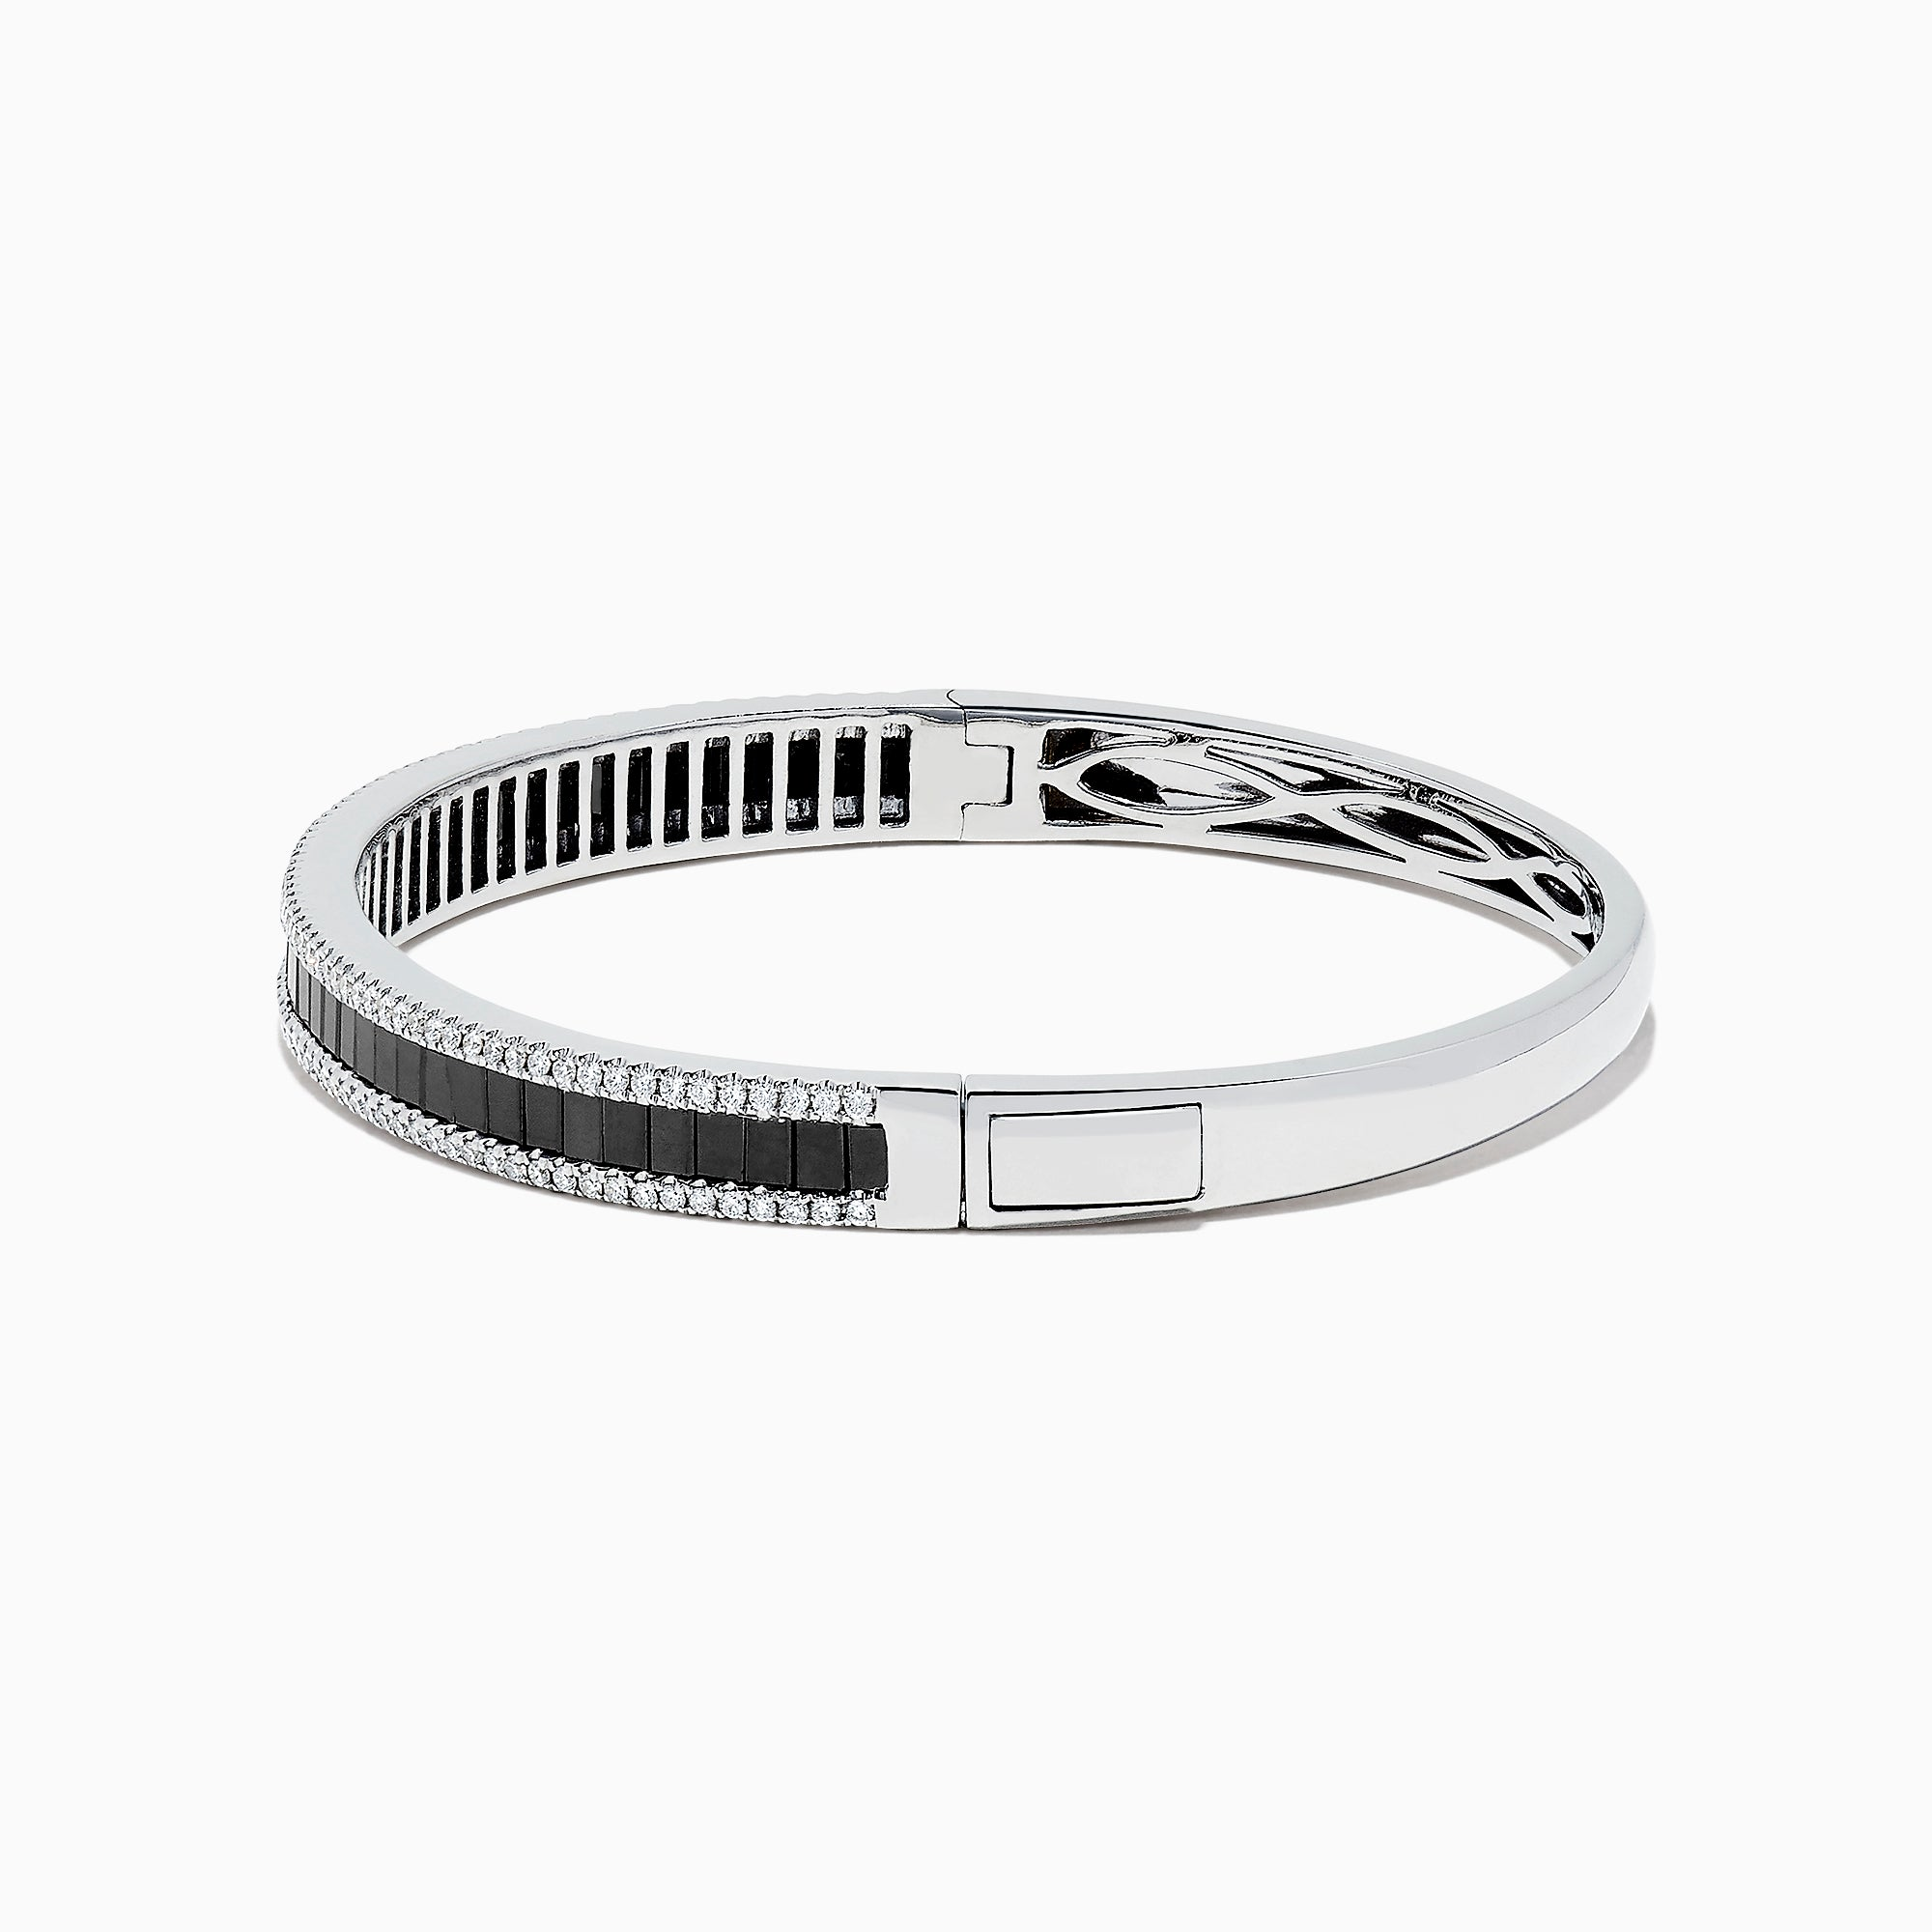 Effy 14K White Gold Black and White Diamond Bangle, 3.93 TCW